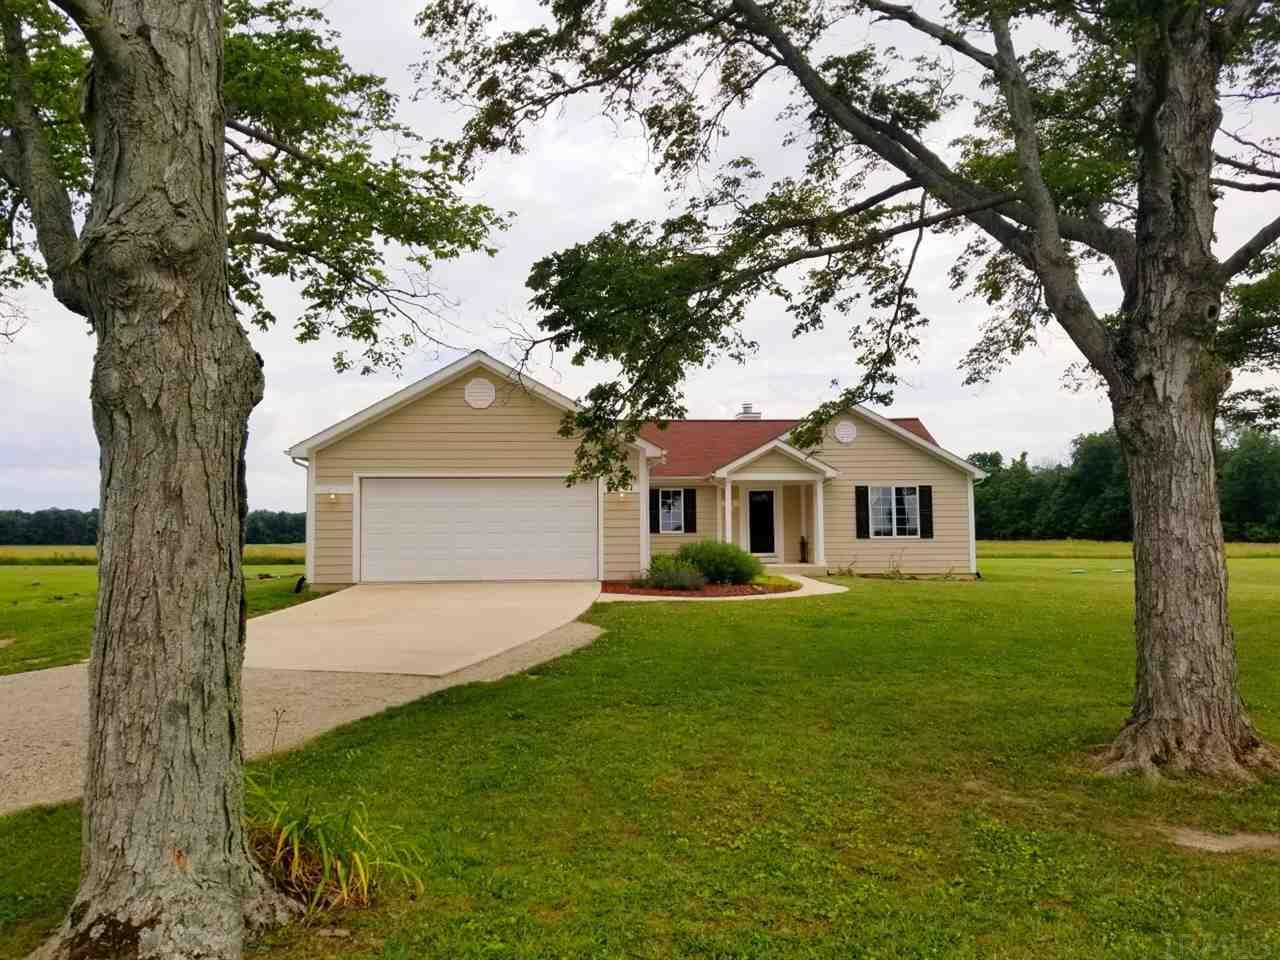 5417 W 100 South, Huntington, IN 46750